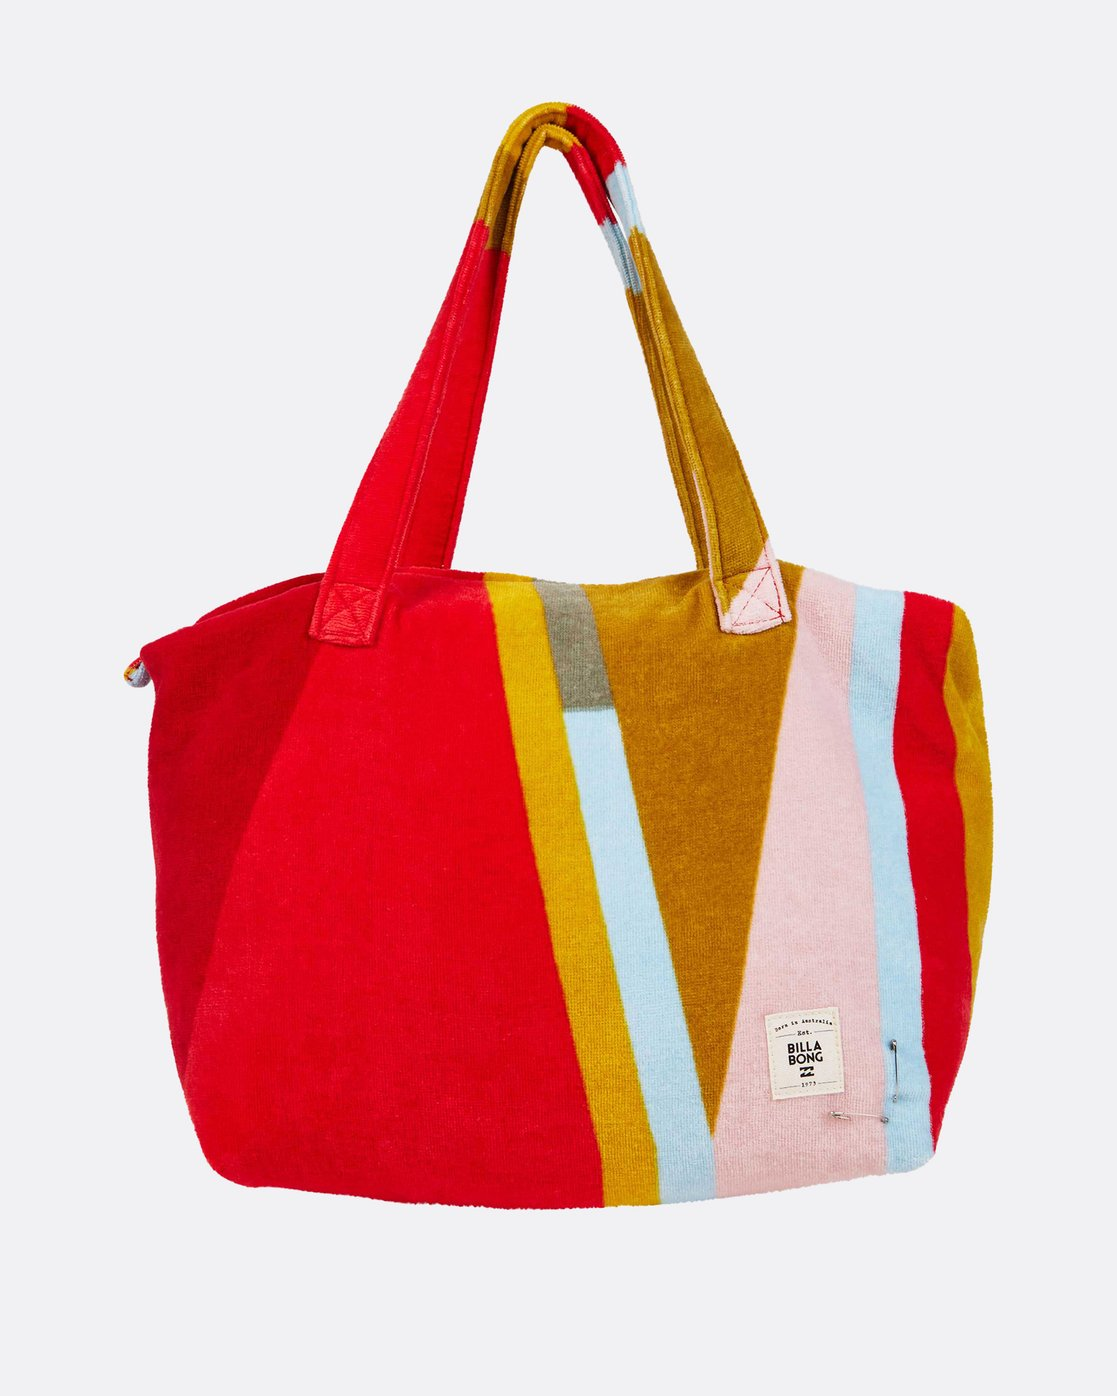 BILLABONG CHASING PARADISE TOTE BAG